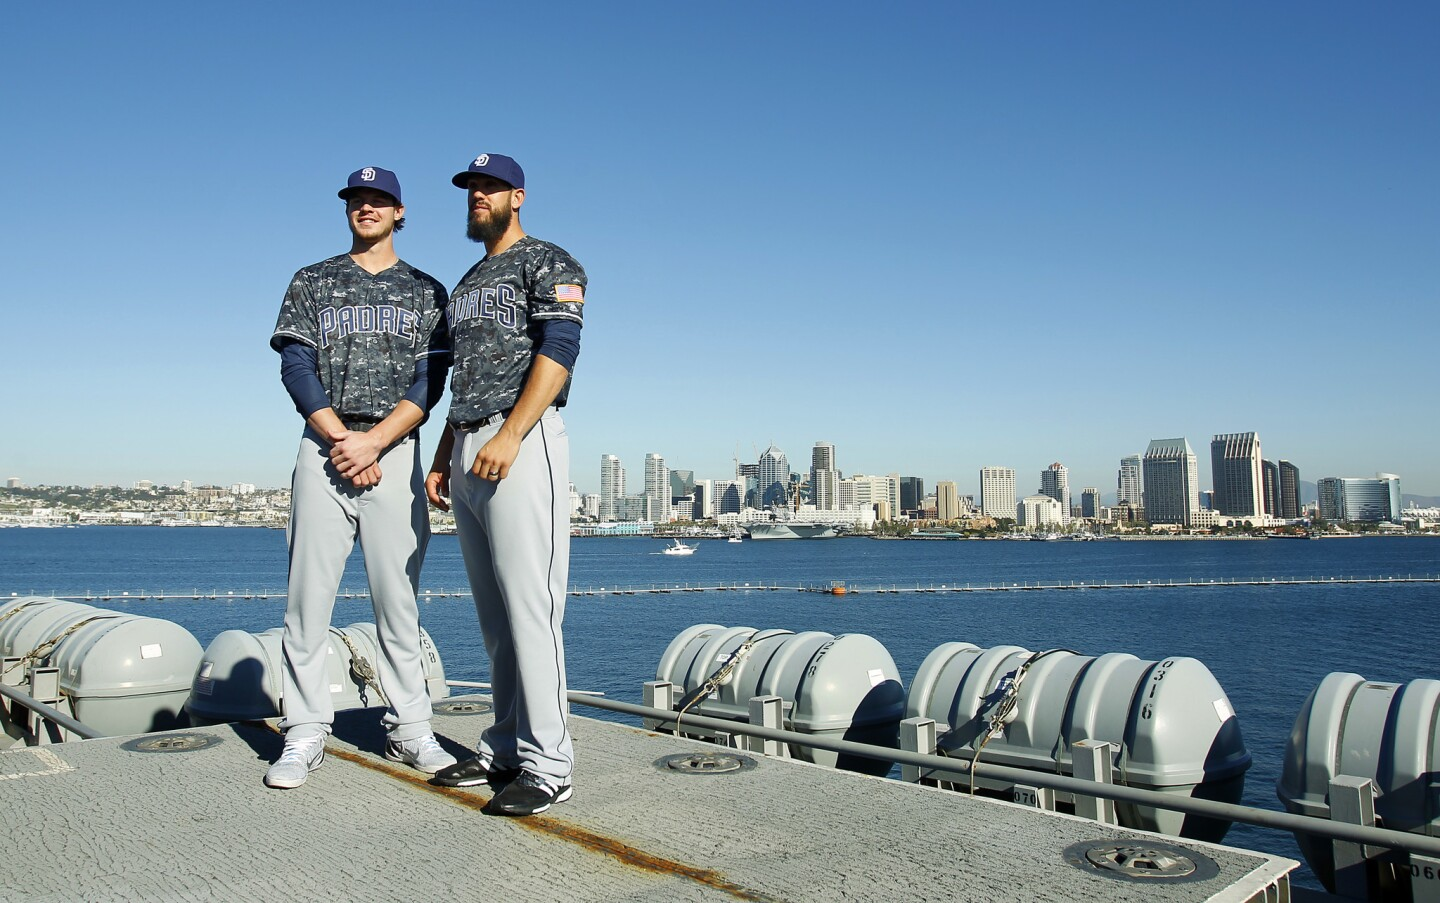 SAN DIEGO, CA -NOVEMBER 29, 2015 - Padres Wil Myers, left, pitcher James Shields unveils the team's new blue digital camouflage tops which are modeled after the US Navy's working uniforms, often called blueberries. . They are shown here at a news conference aboard the aircraft carrier USS Theodore Roosevelt. (K.C. Alfred/ San Diego Union-Tribune)